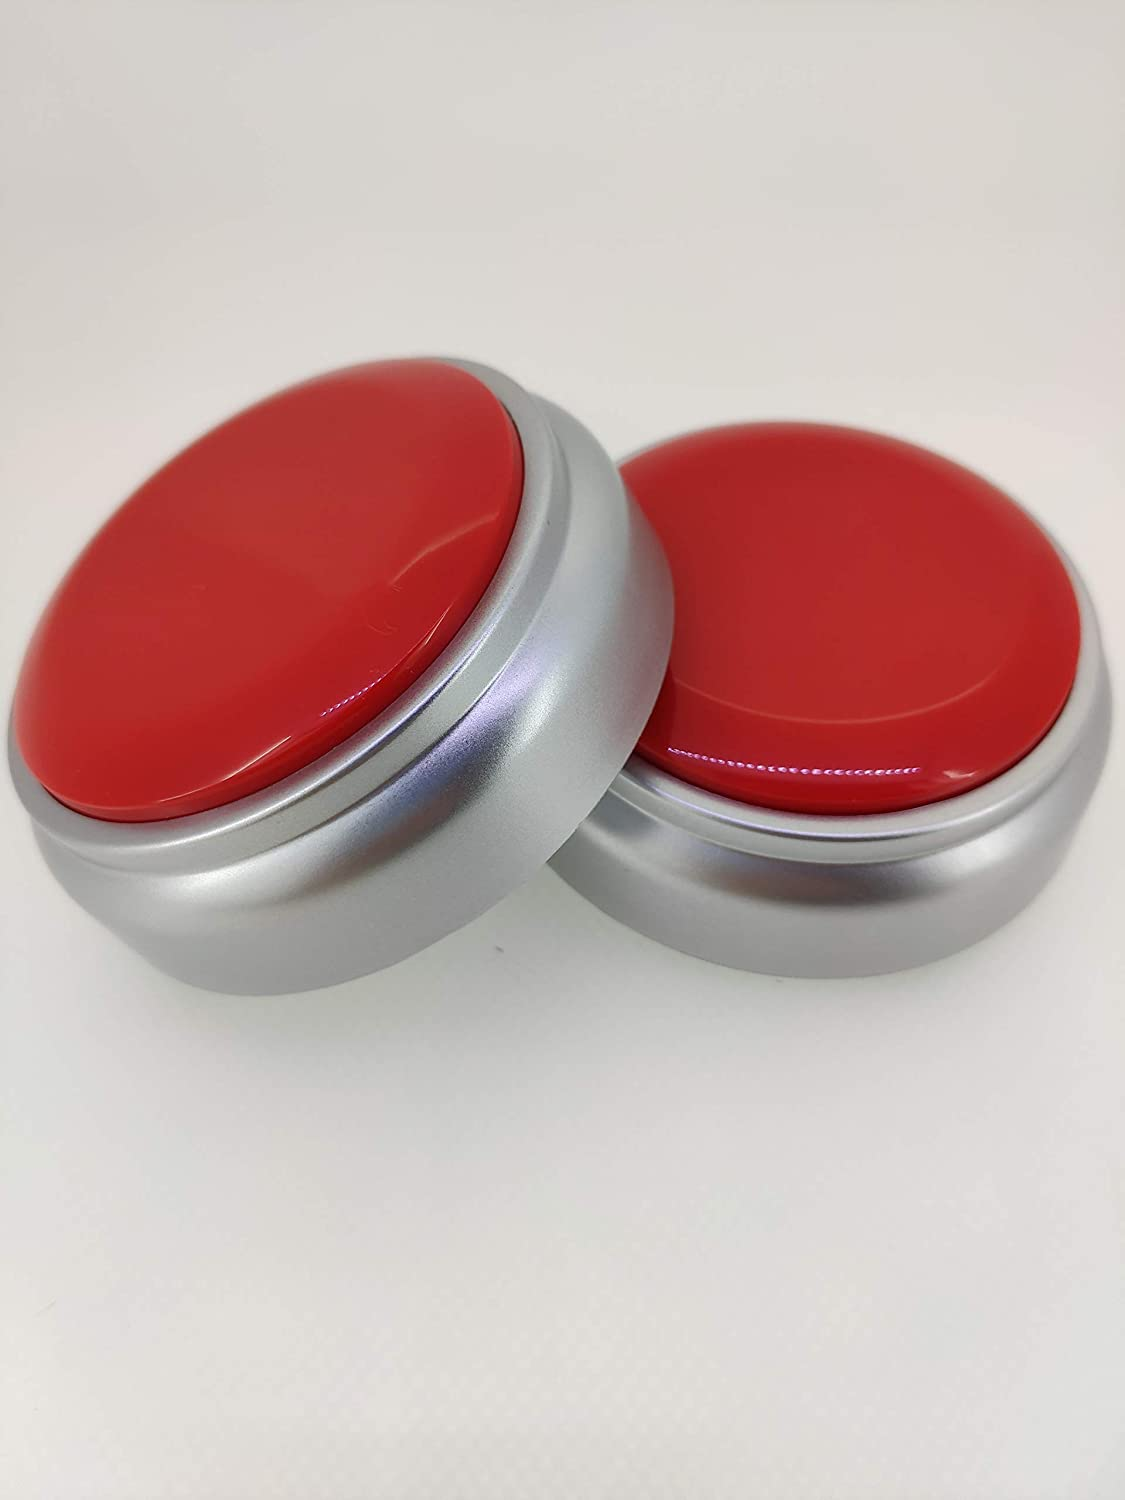 Ltd. Recordable Talking Button with Good Sound Quality Shenzhen Sight Electronic Trading Co Red+Silver Record Sound Button for Gift Toys Education Neutral Voice Recorder Button 30 Second